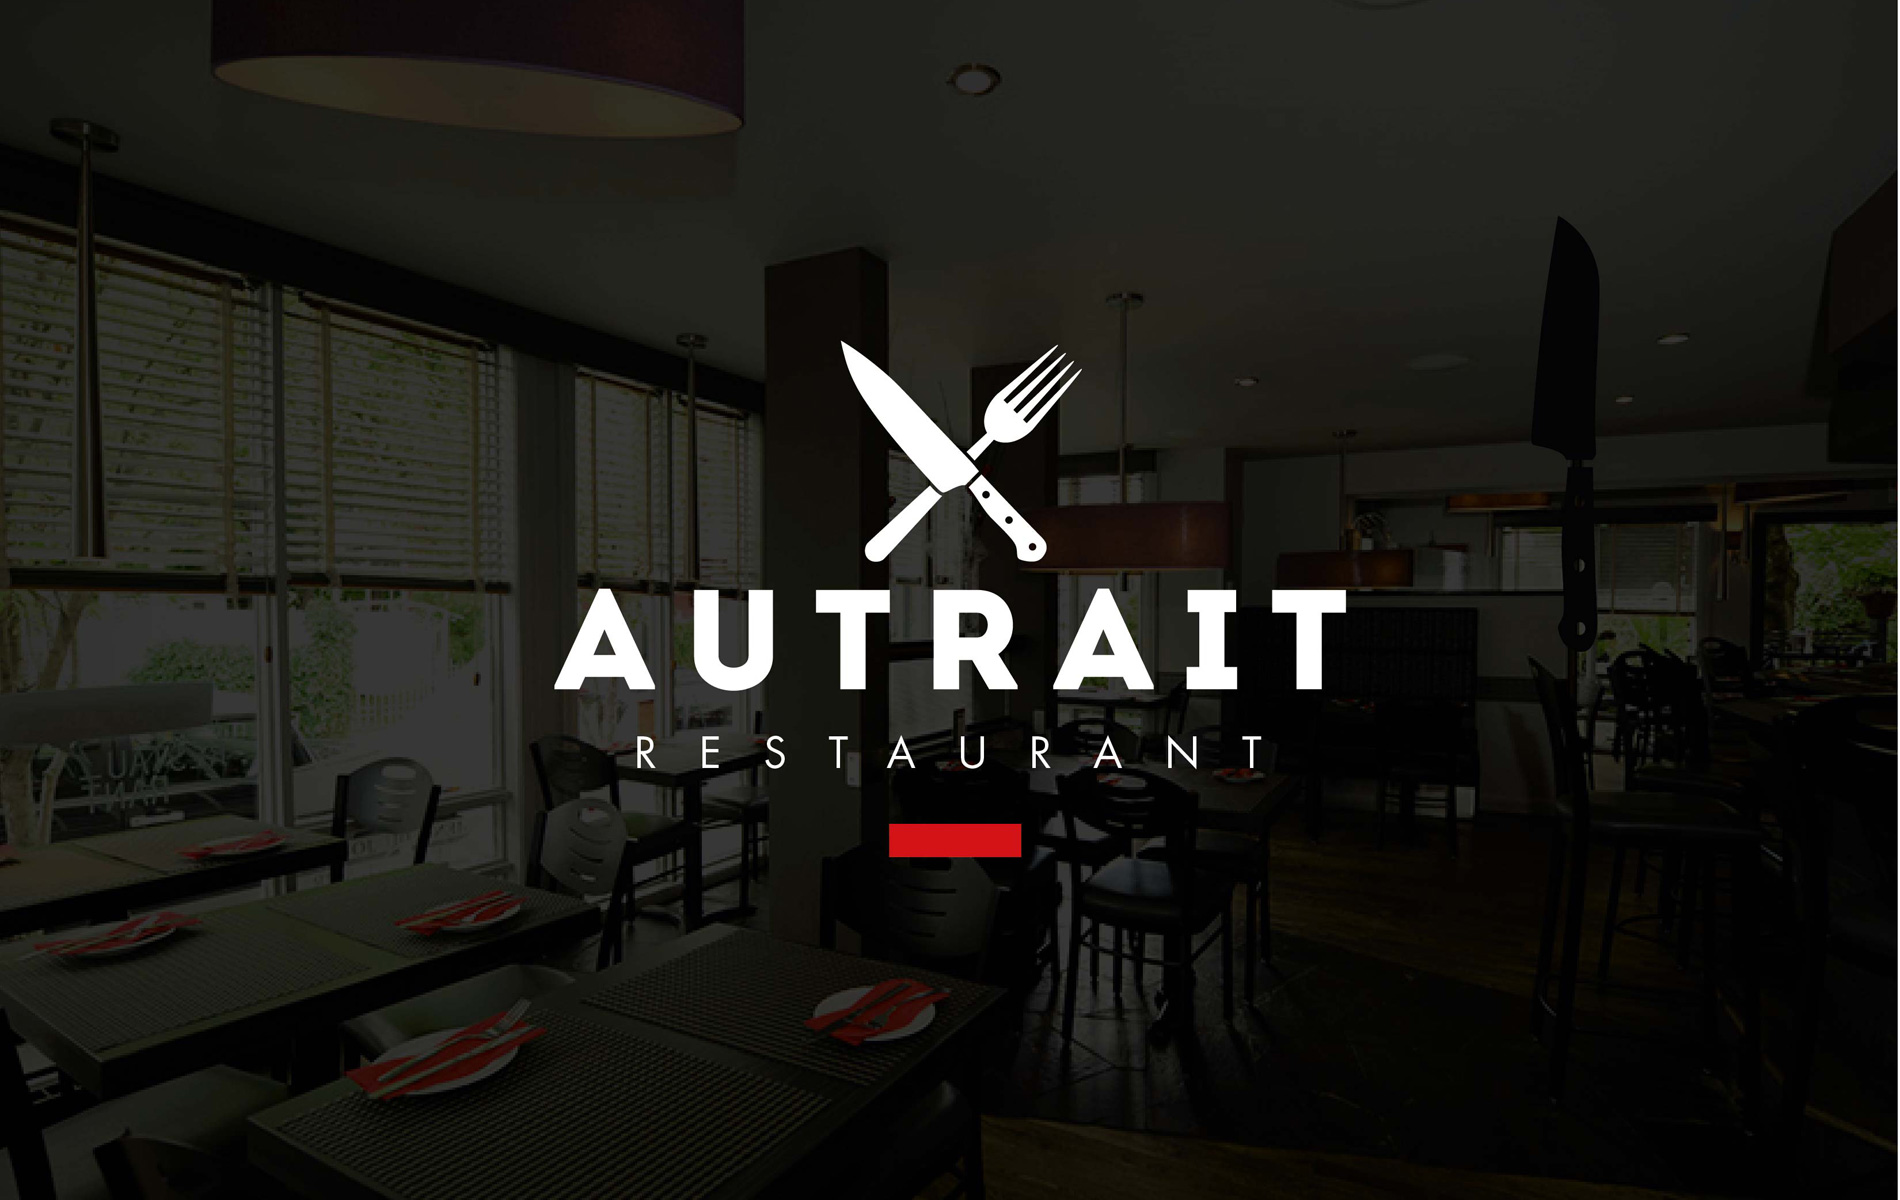 Au Trait - Restaurant